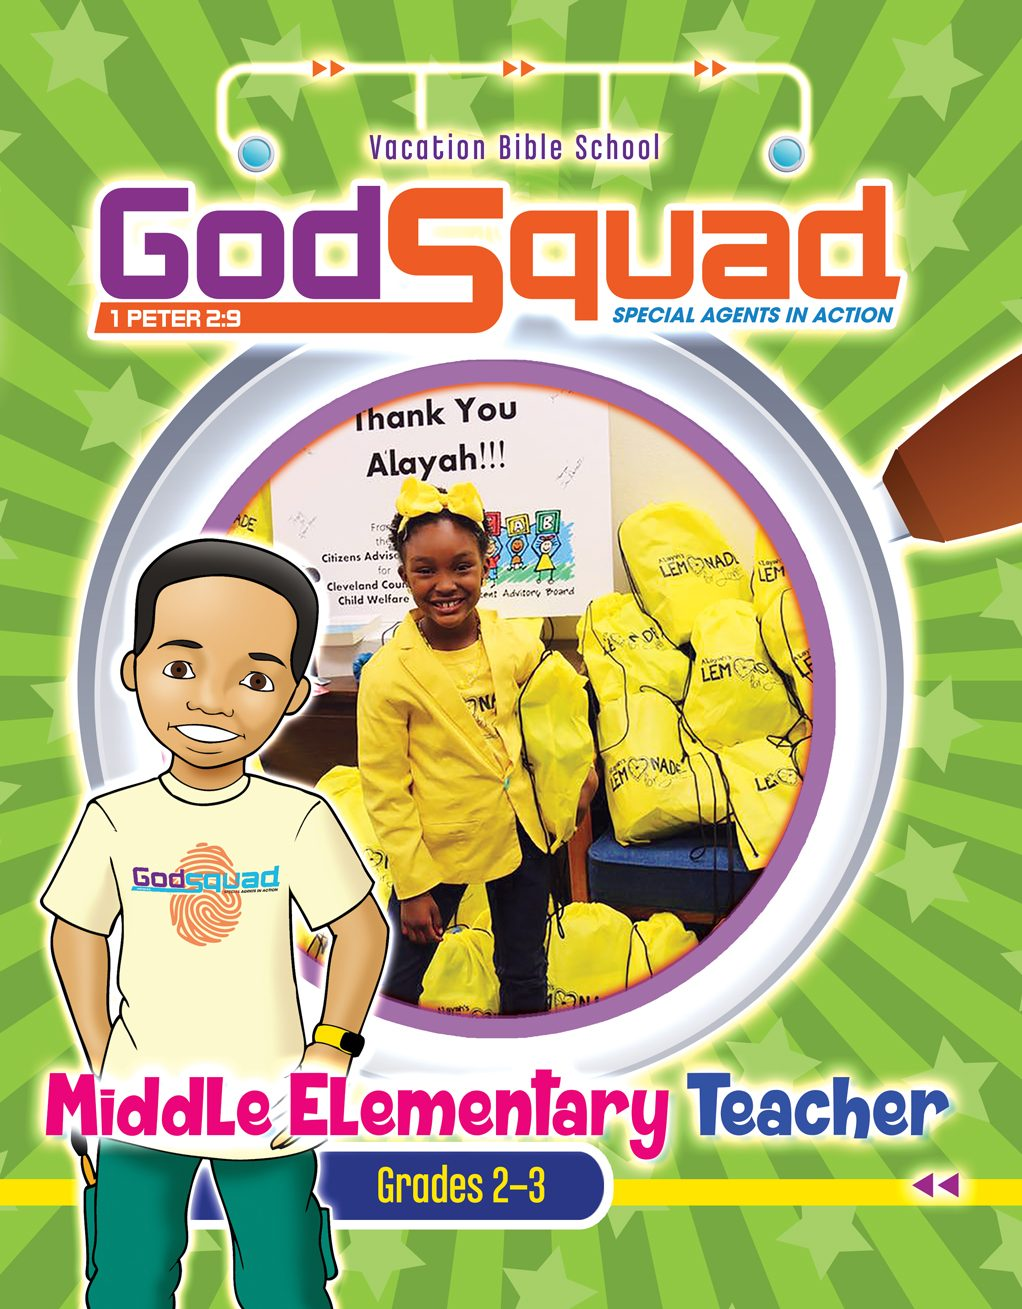 VBS GodSquad Middle Elementary Teacher 2018